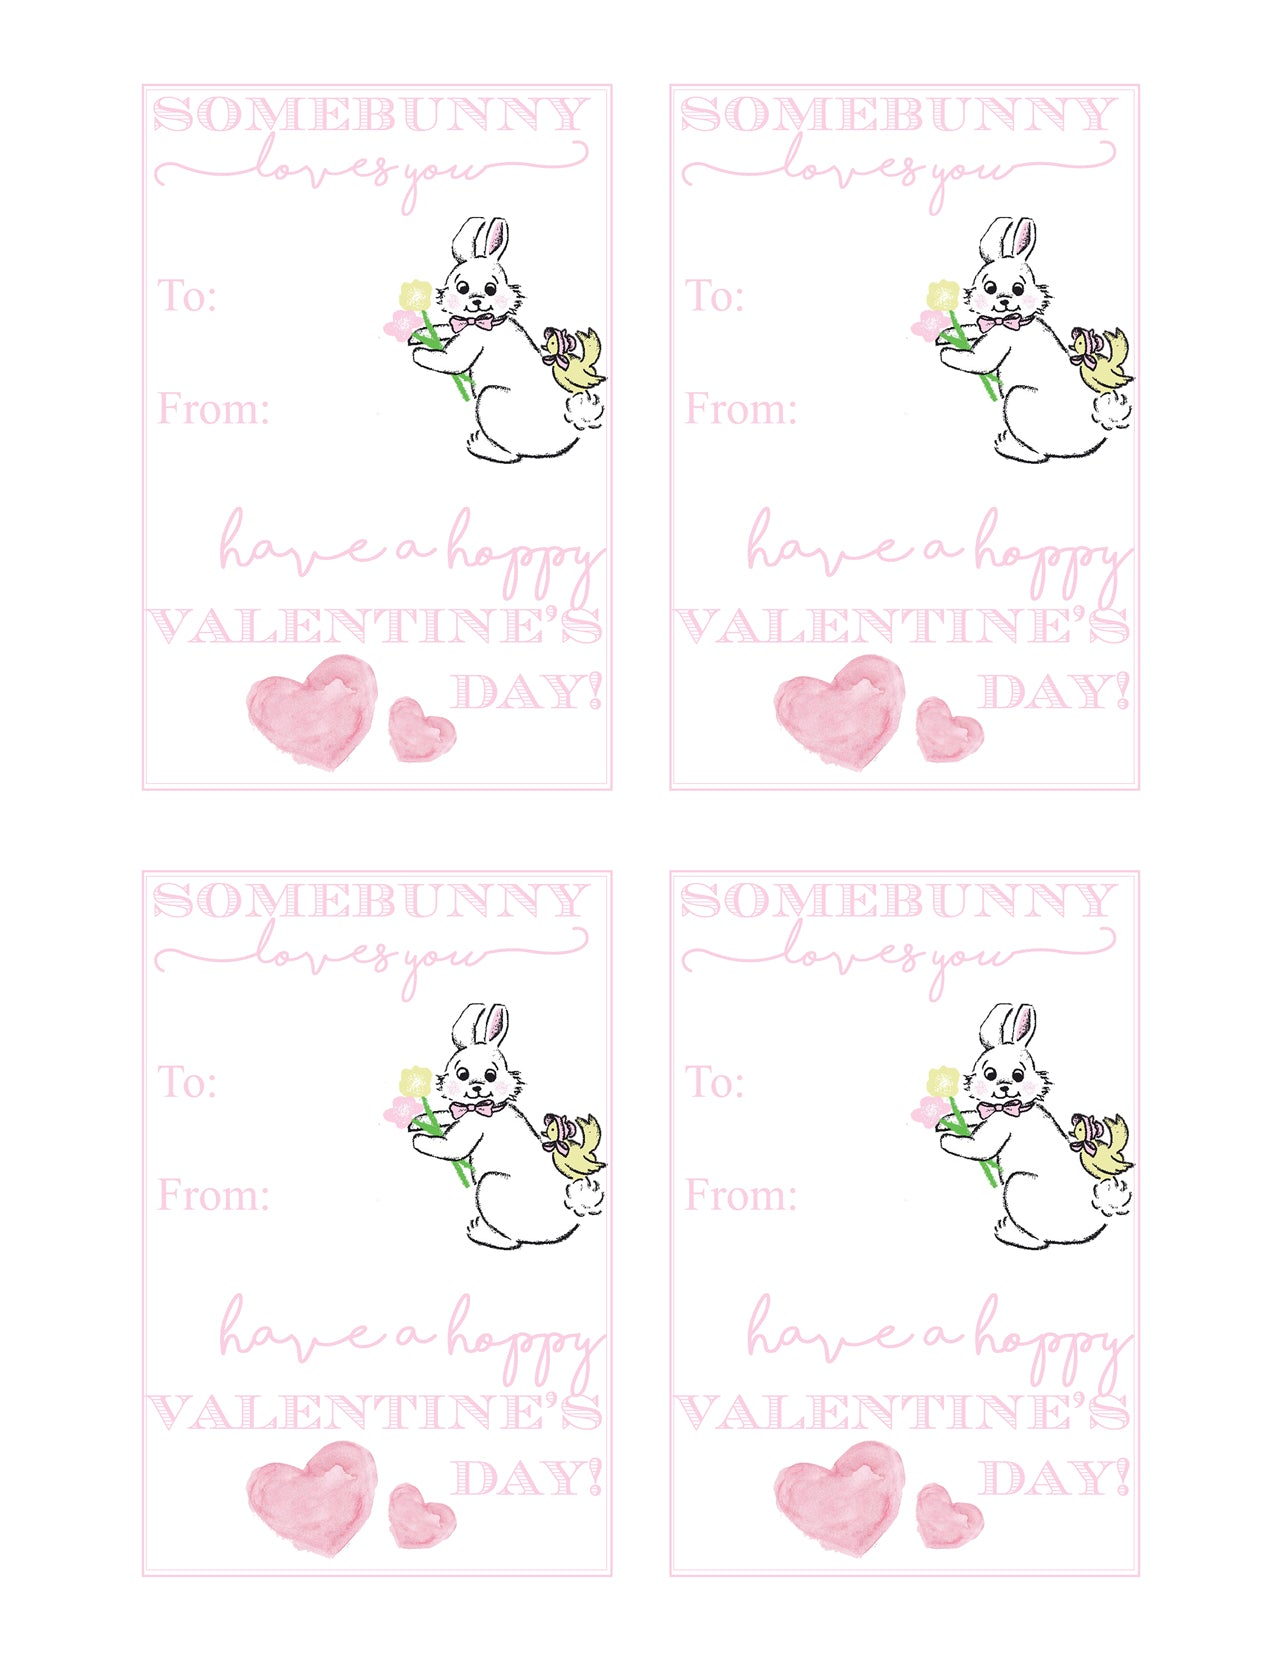 Somebunny Loves You T.B.B.C. Valentine